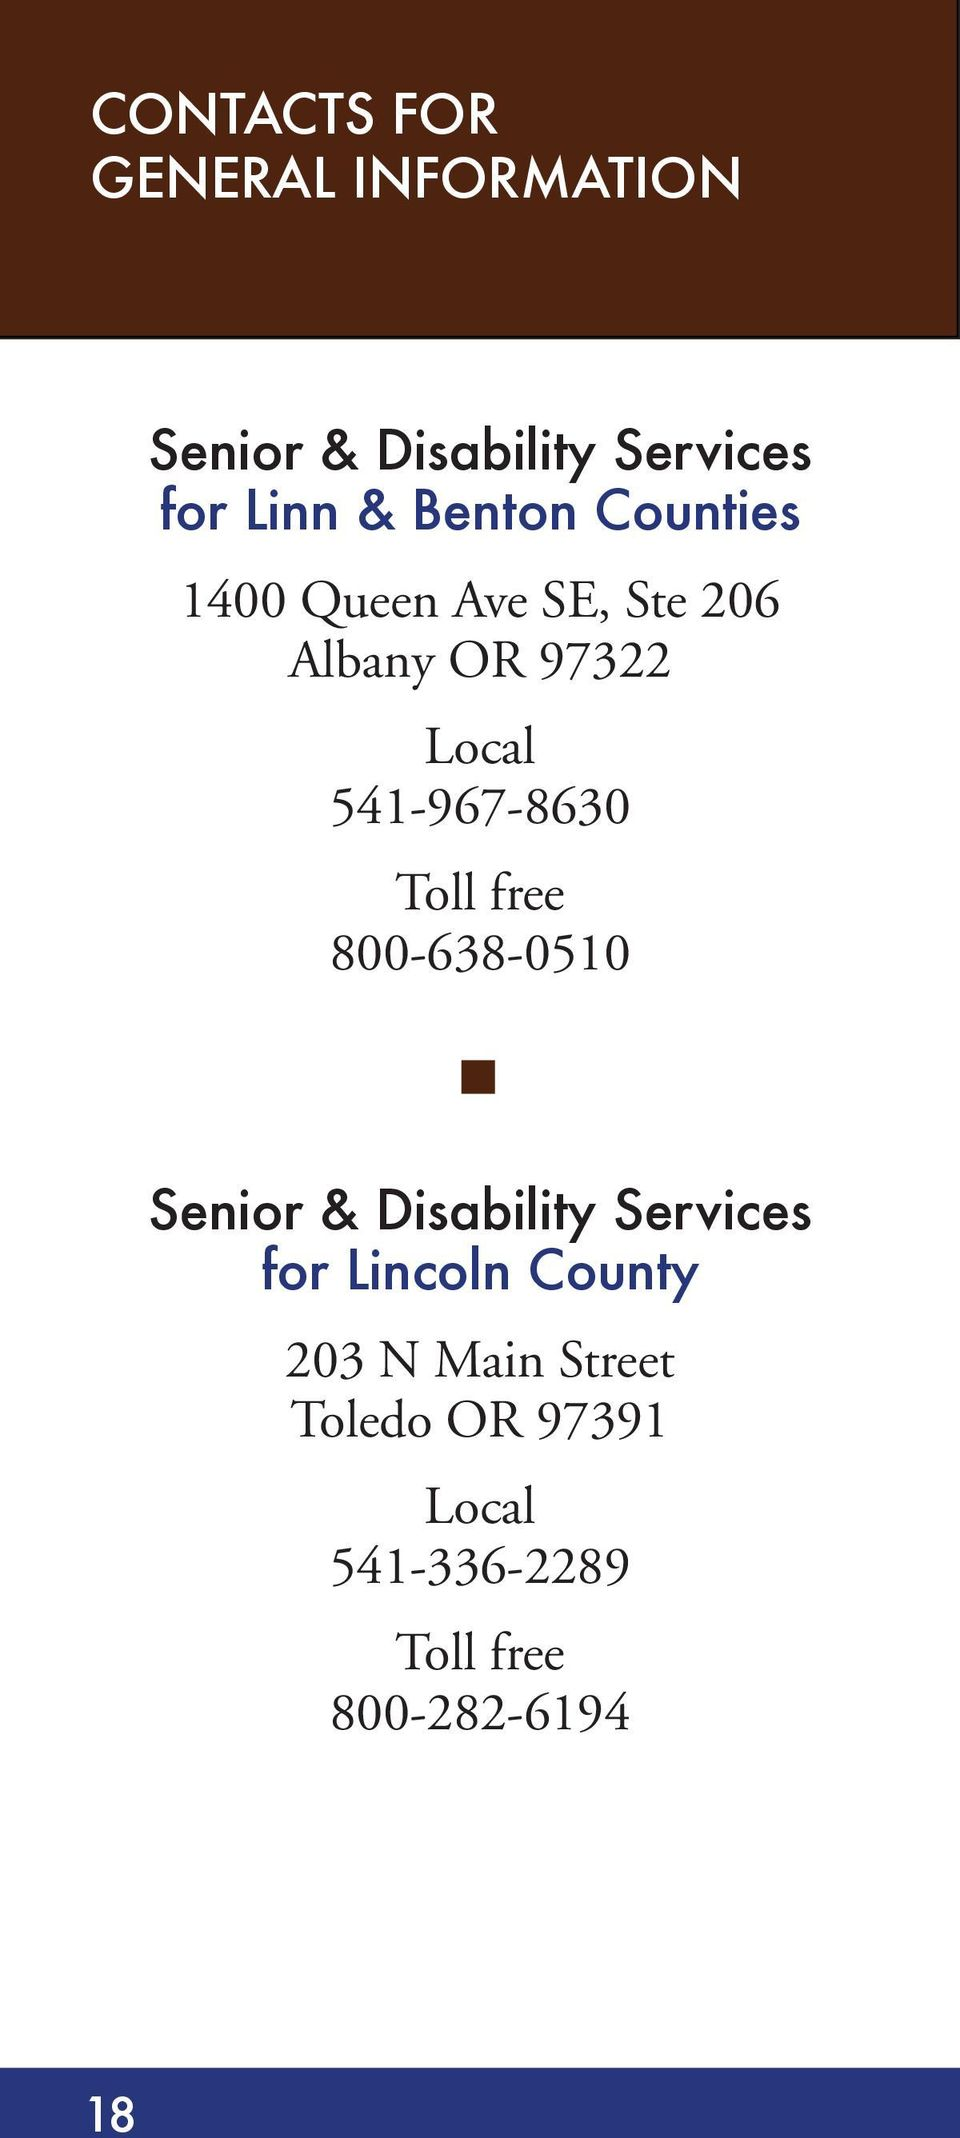 541-967-8630 Toll free 800-638-0510 Senior & Disability Services for